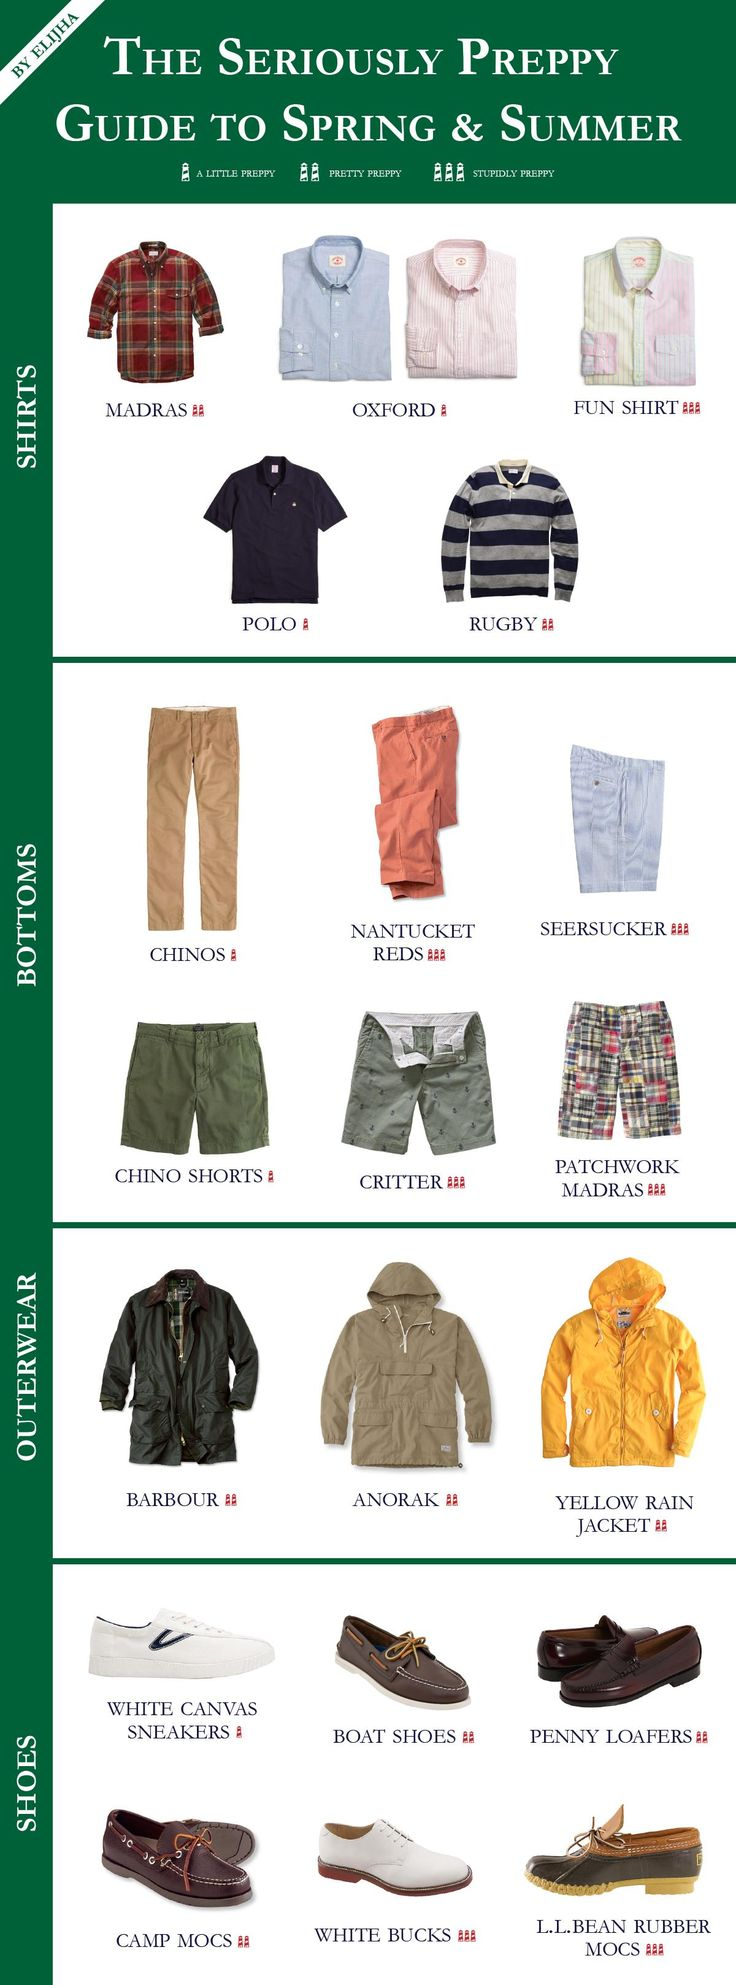 rugby, chinos, barbour, yellow rain jacket, and all those shoes (except the damn penny loafers, and bucks, ugh)